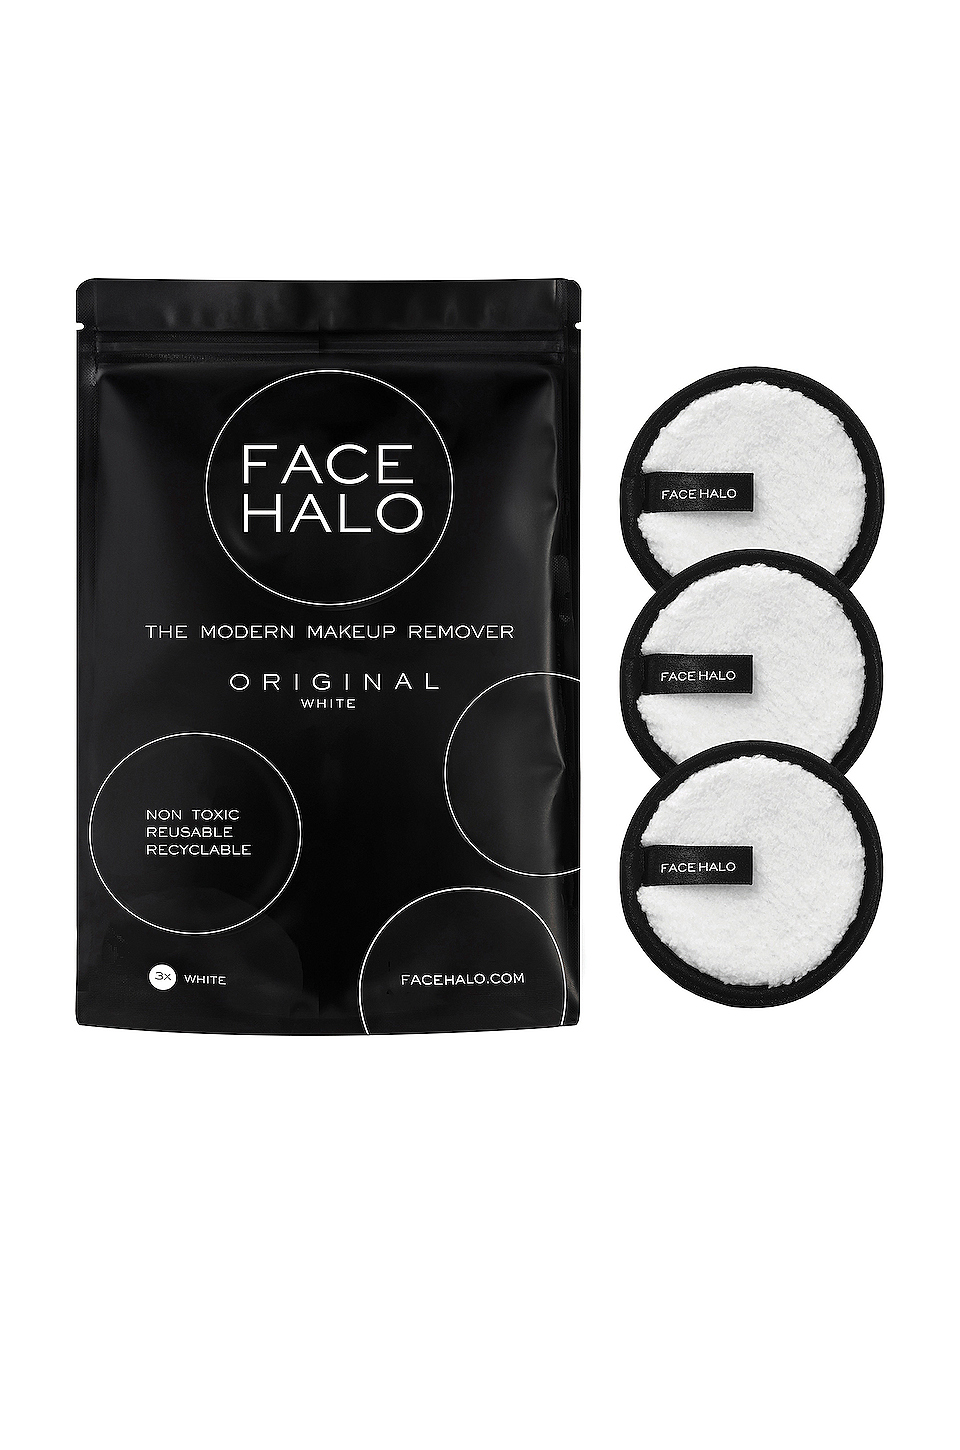 FACE HALO 3 Pack in Original White REVOLVE Makeup